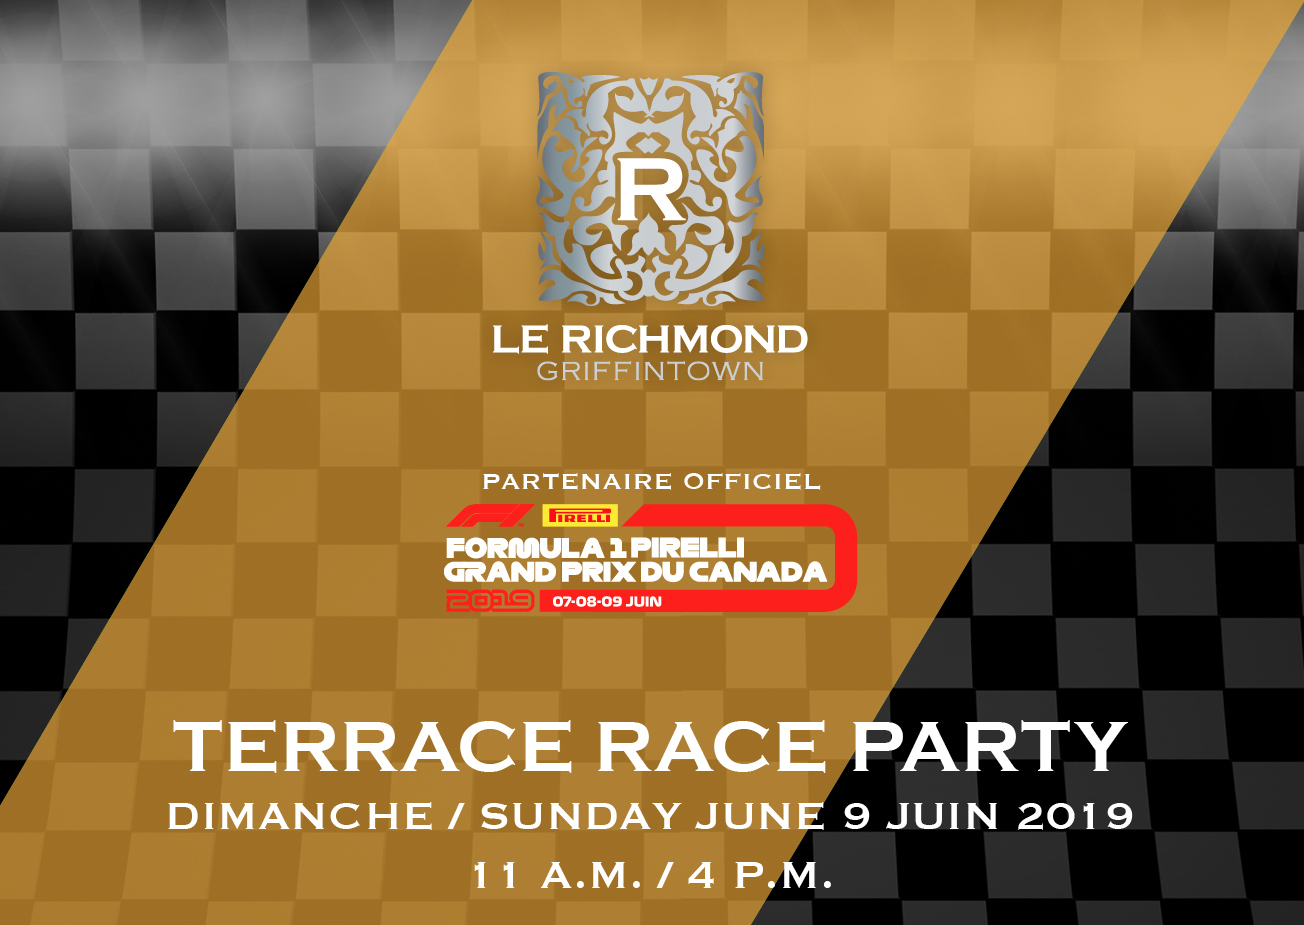 Terrace Race Party Richmond Grand Prix 2019 Edition